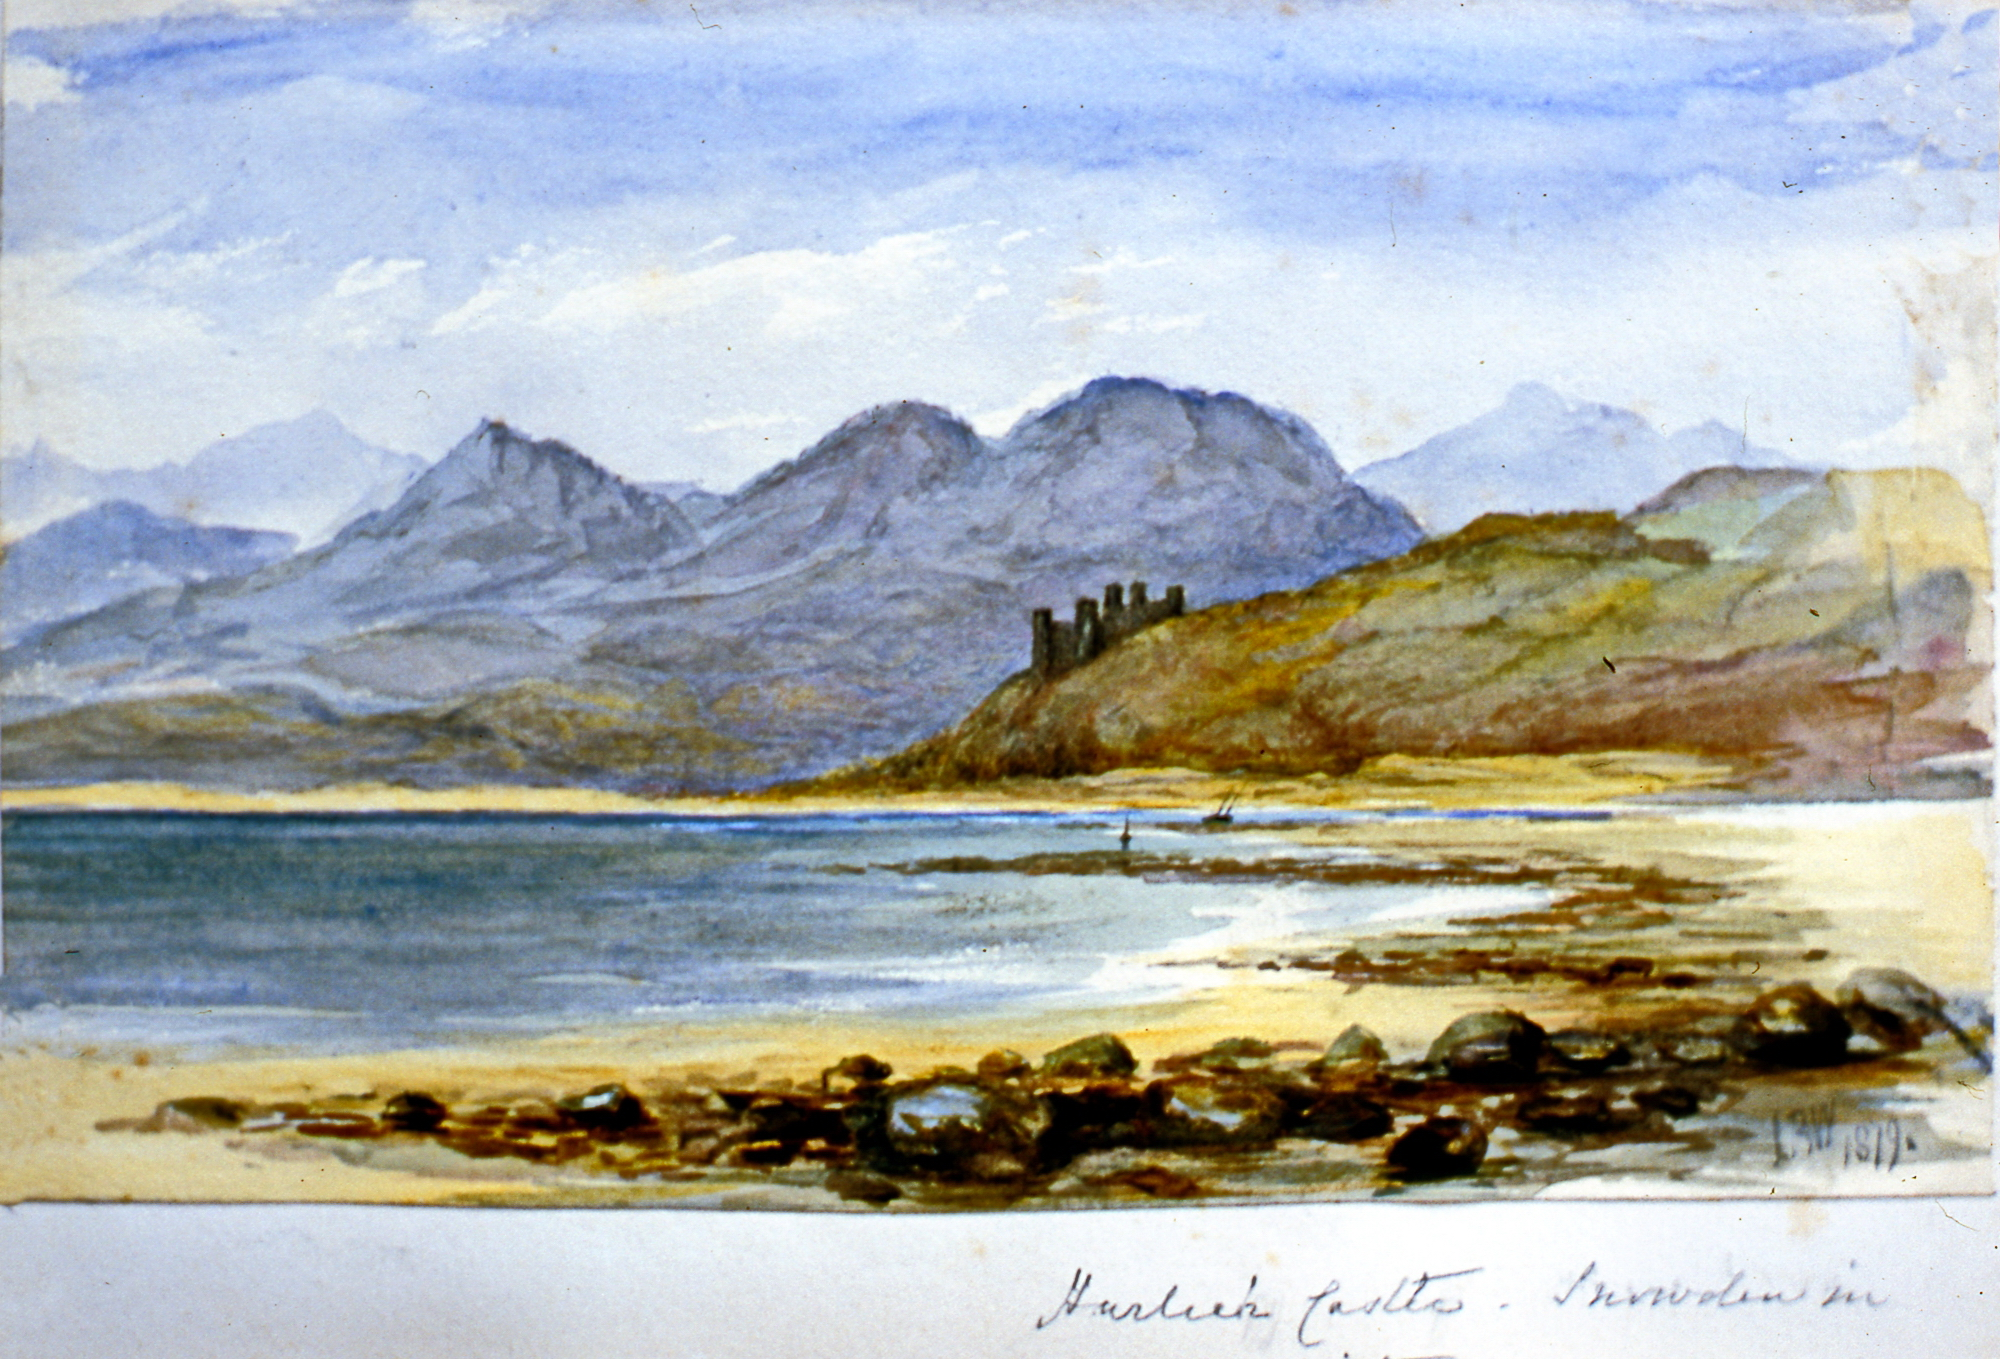 "Harleck Castle - Interuden (?) in the distance , 1879, Julia Bullock Webster, watercolour on paper, 5 1/4"" x 8 5/8"", 2003.02.46, gift of The Grist Mill at Keremeos"